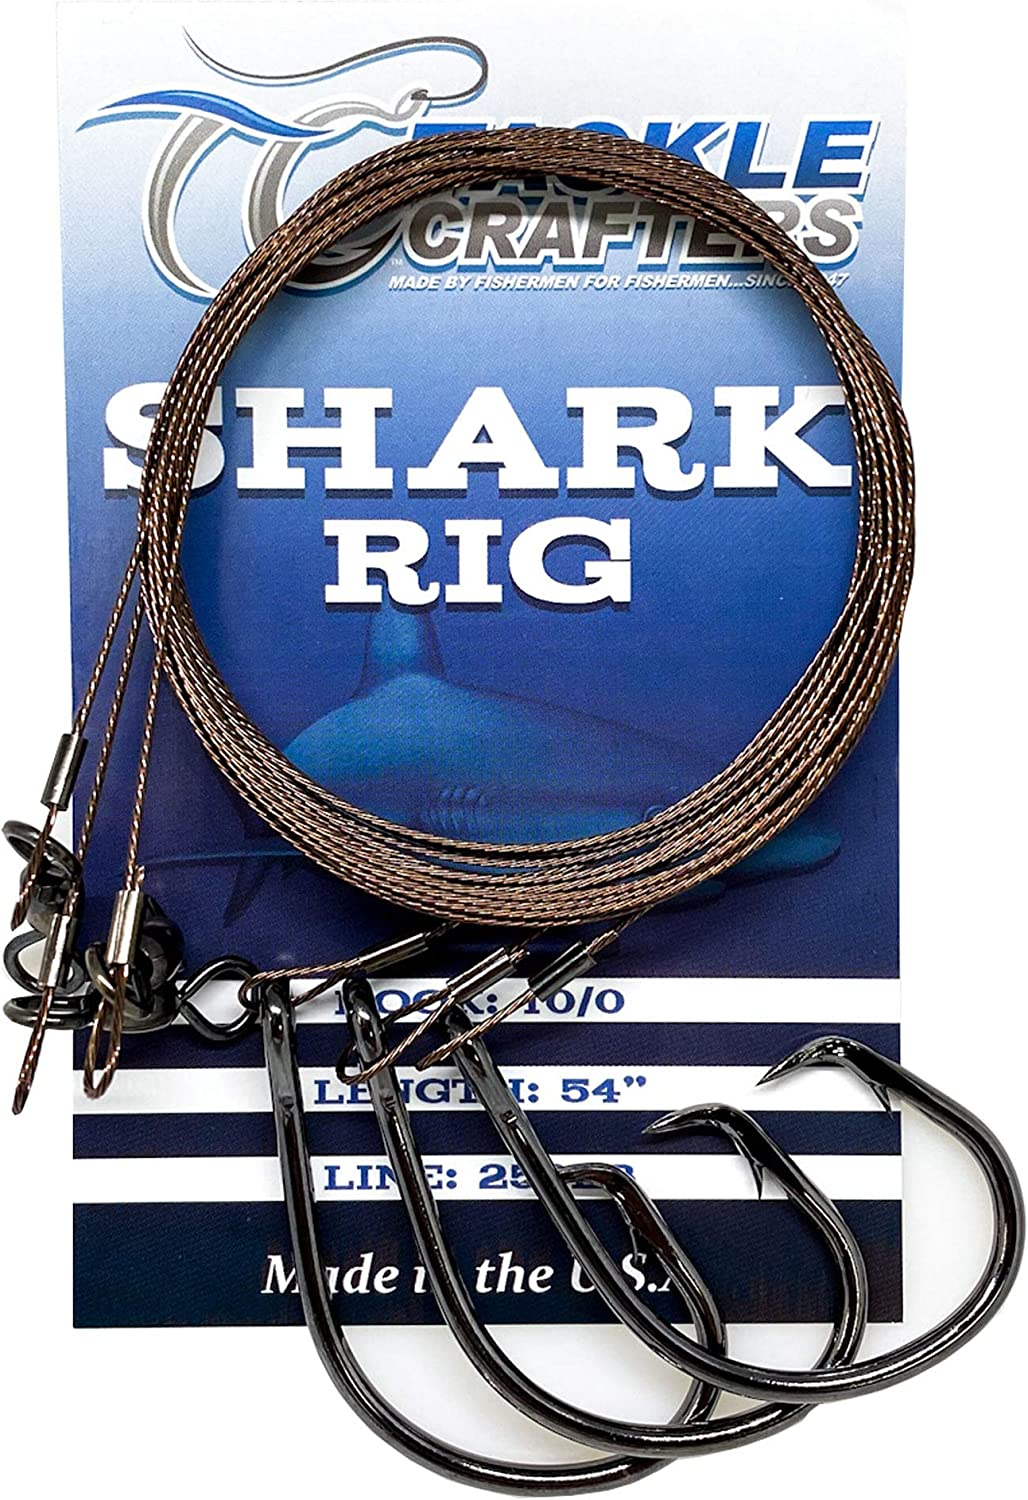 Shark Rig Circle Hook Saltwater Fishing Gear and Tackle 3 Pack - Made in The USA